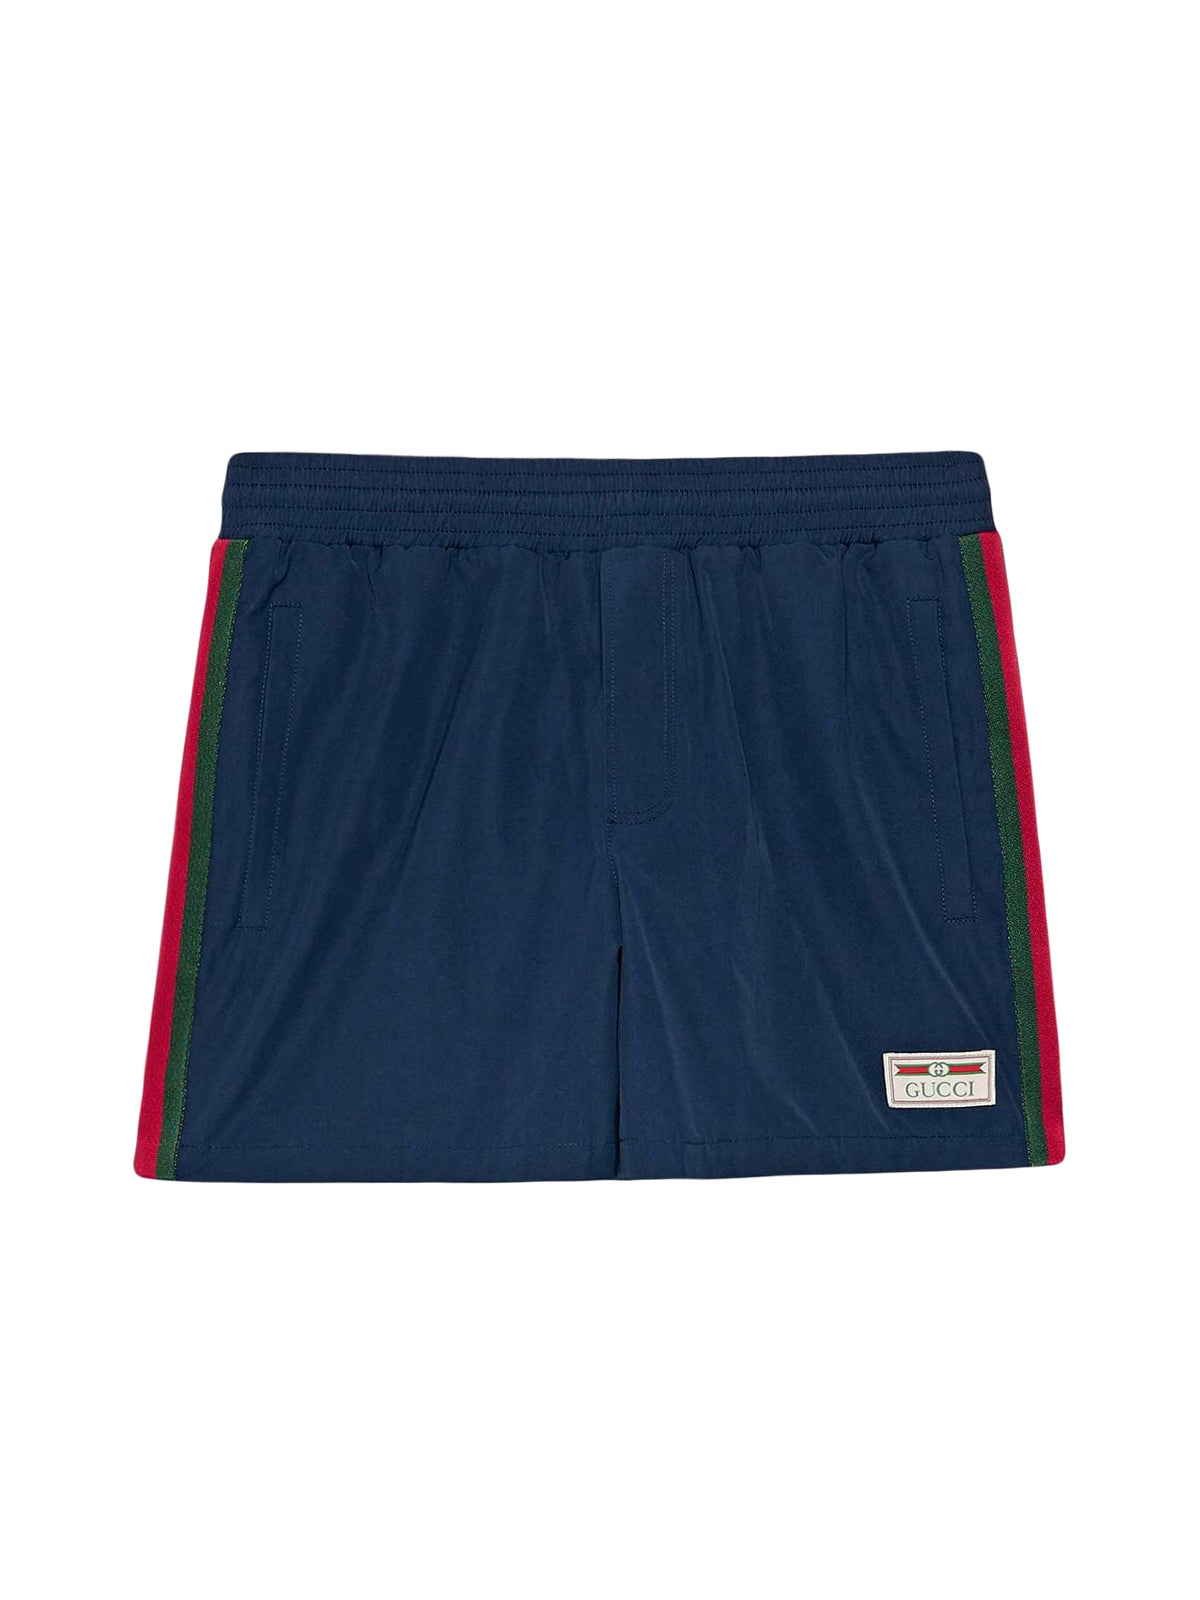 logo-patch swim shorts